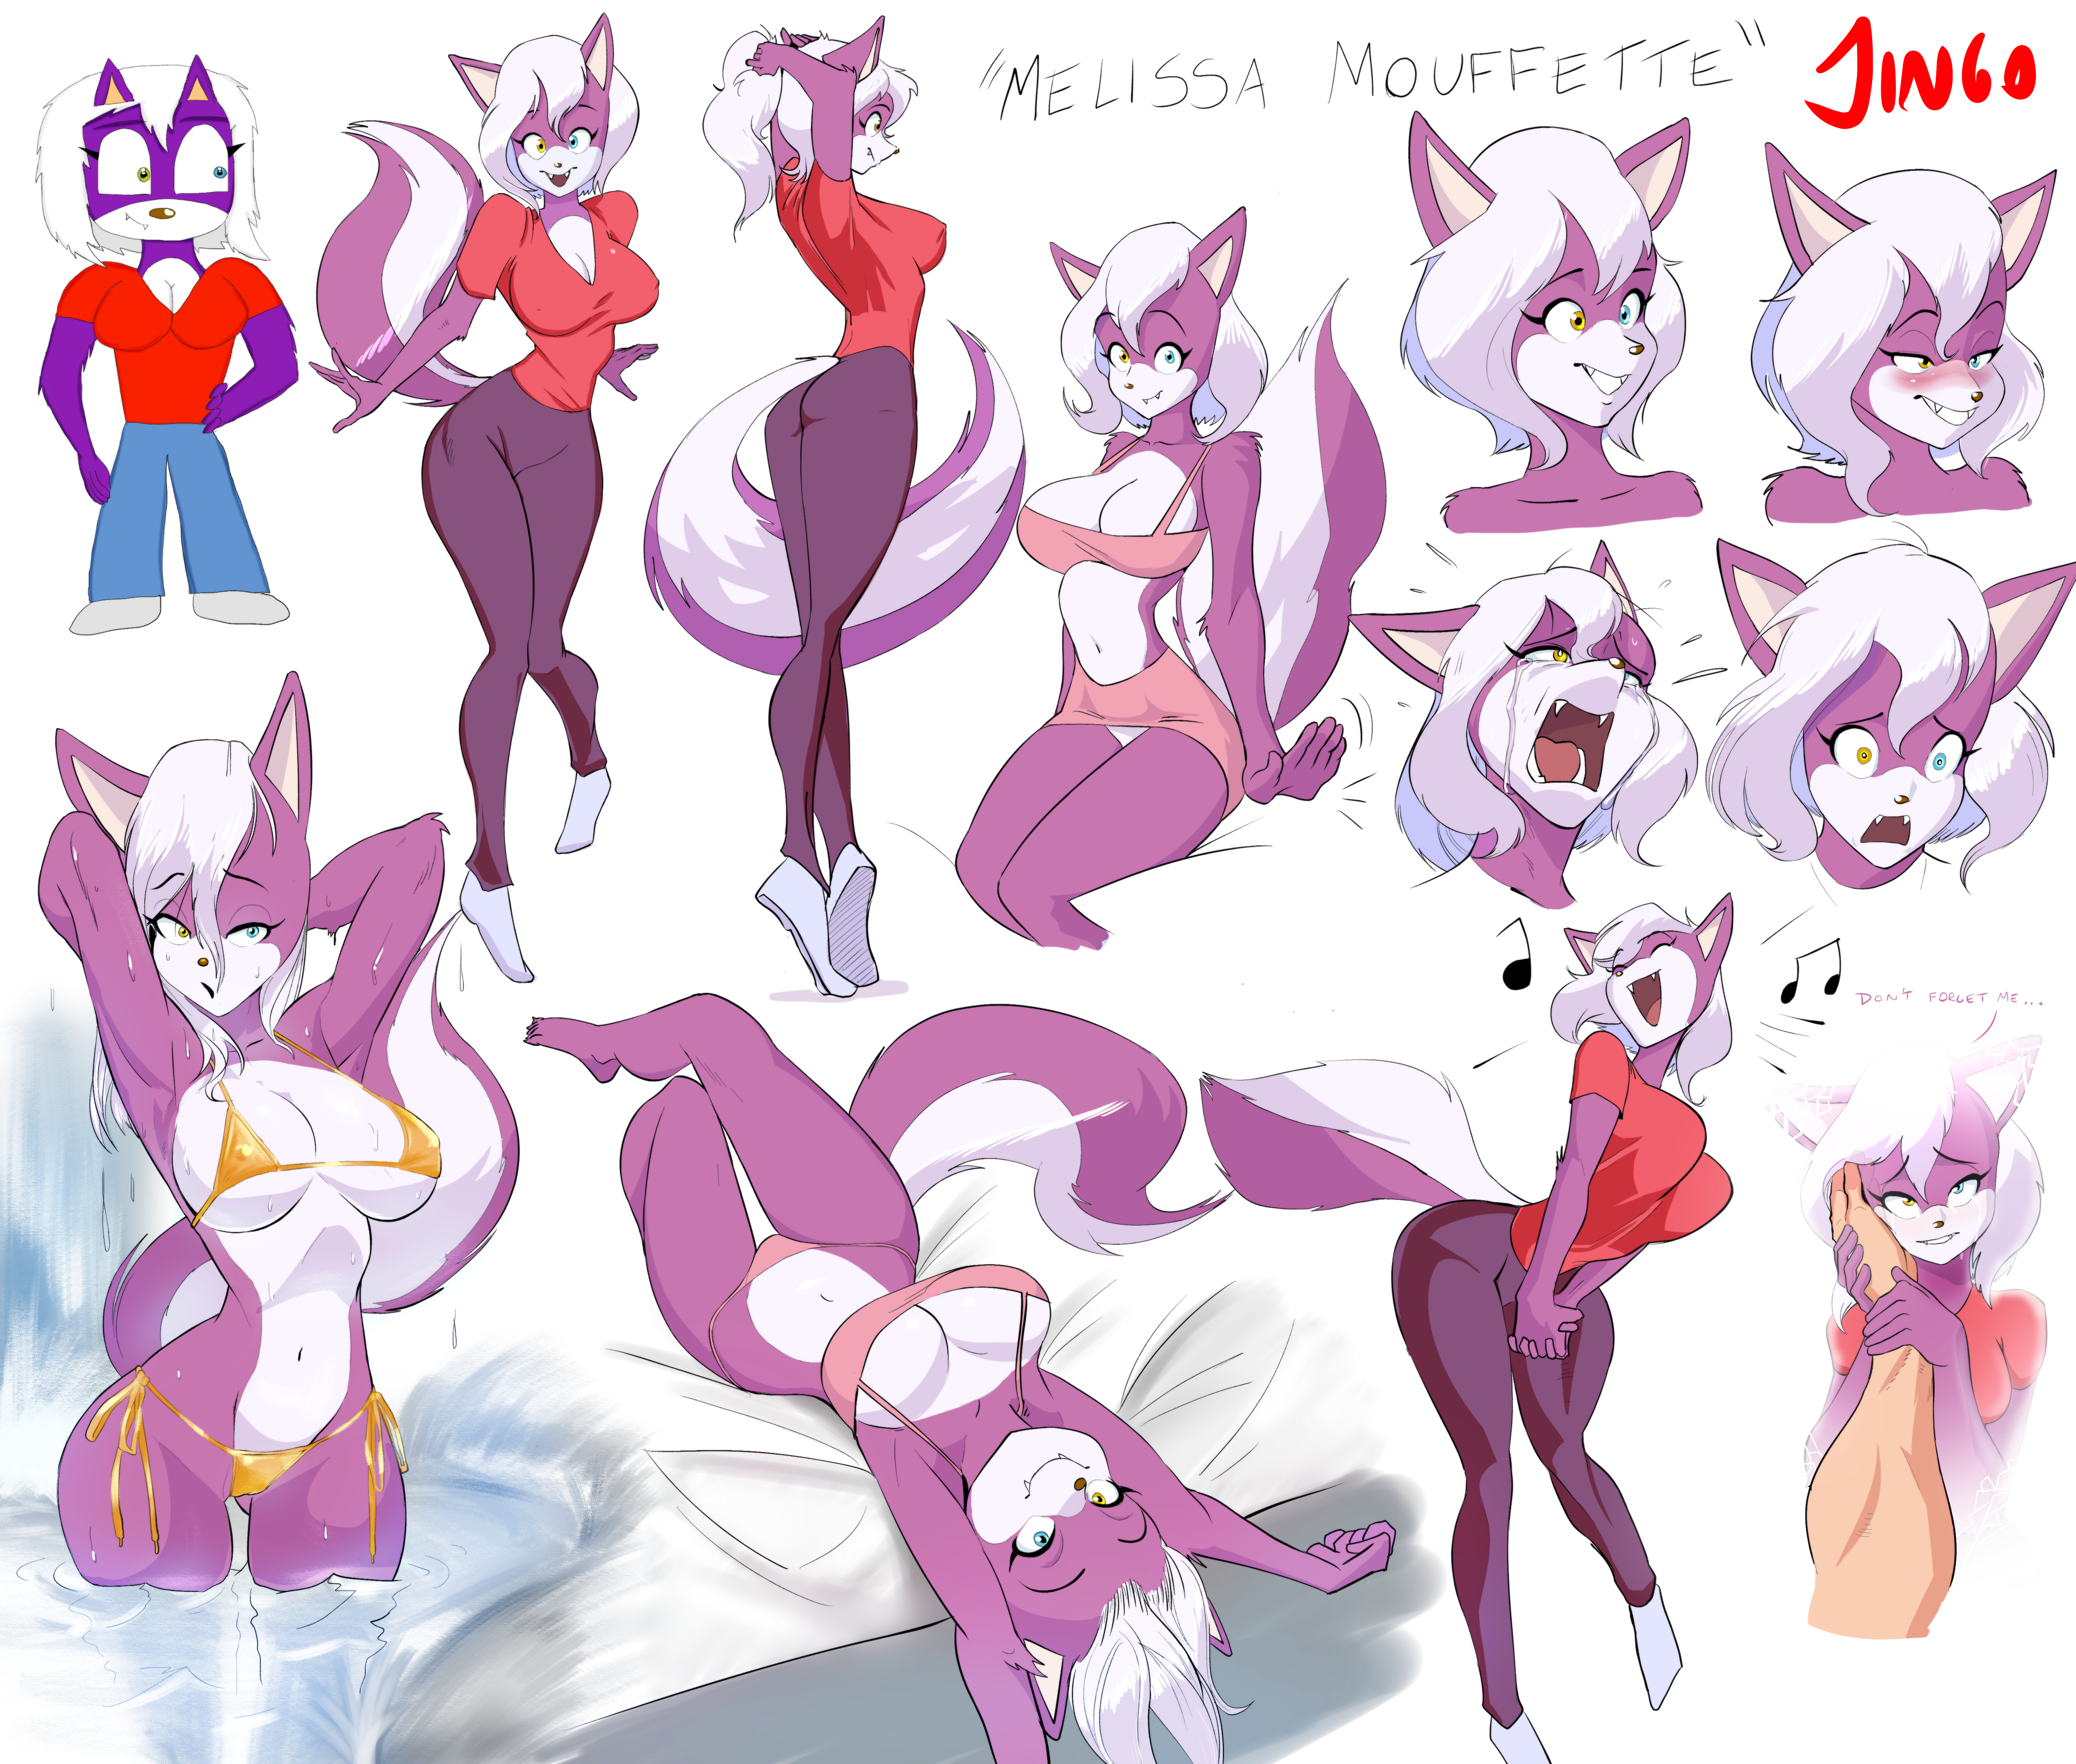 Melissa Mike And Melissa Model Sheet By Captainjingo On Newgrounds Melissa walks in on mike yelling at his staff. newgrounds com